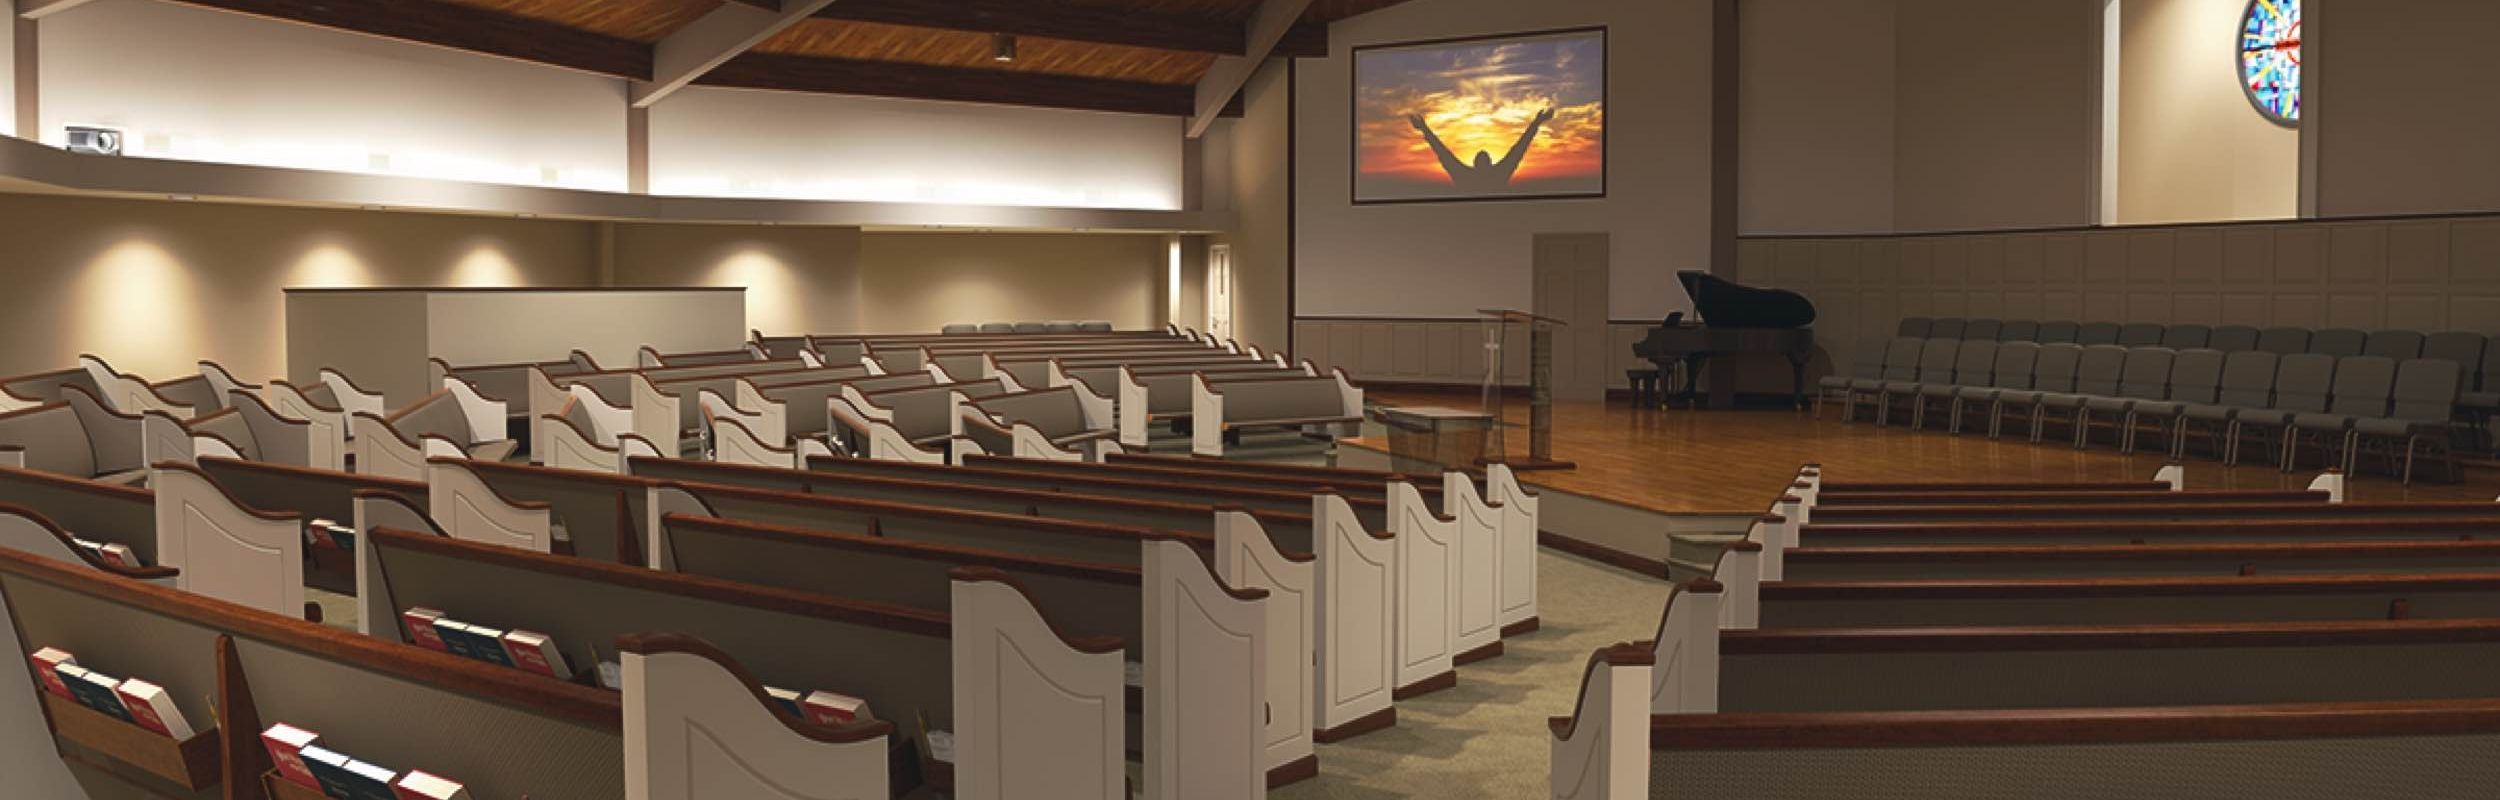 16 audio video performance lighting - Small Church Sanctuary Design Ideas